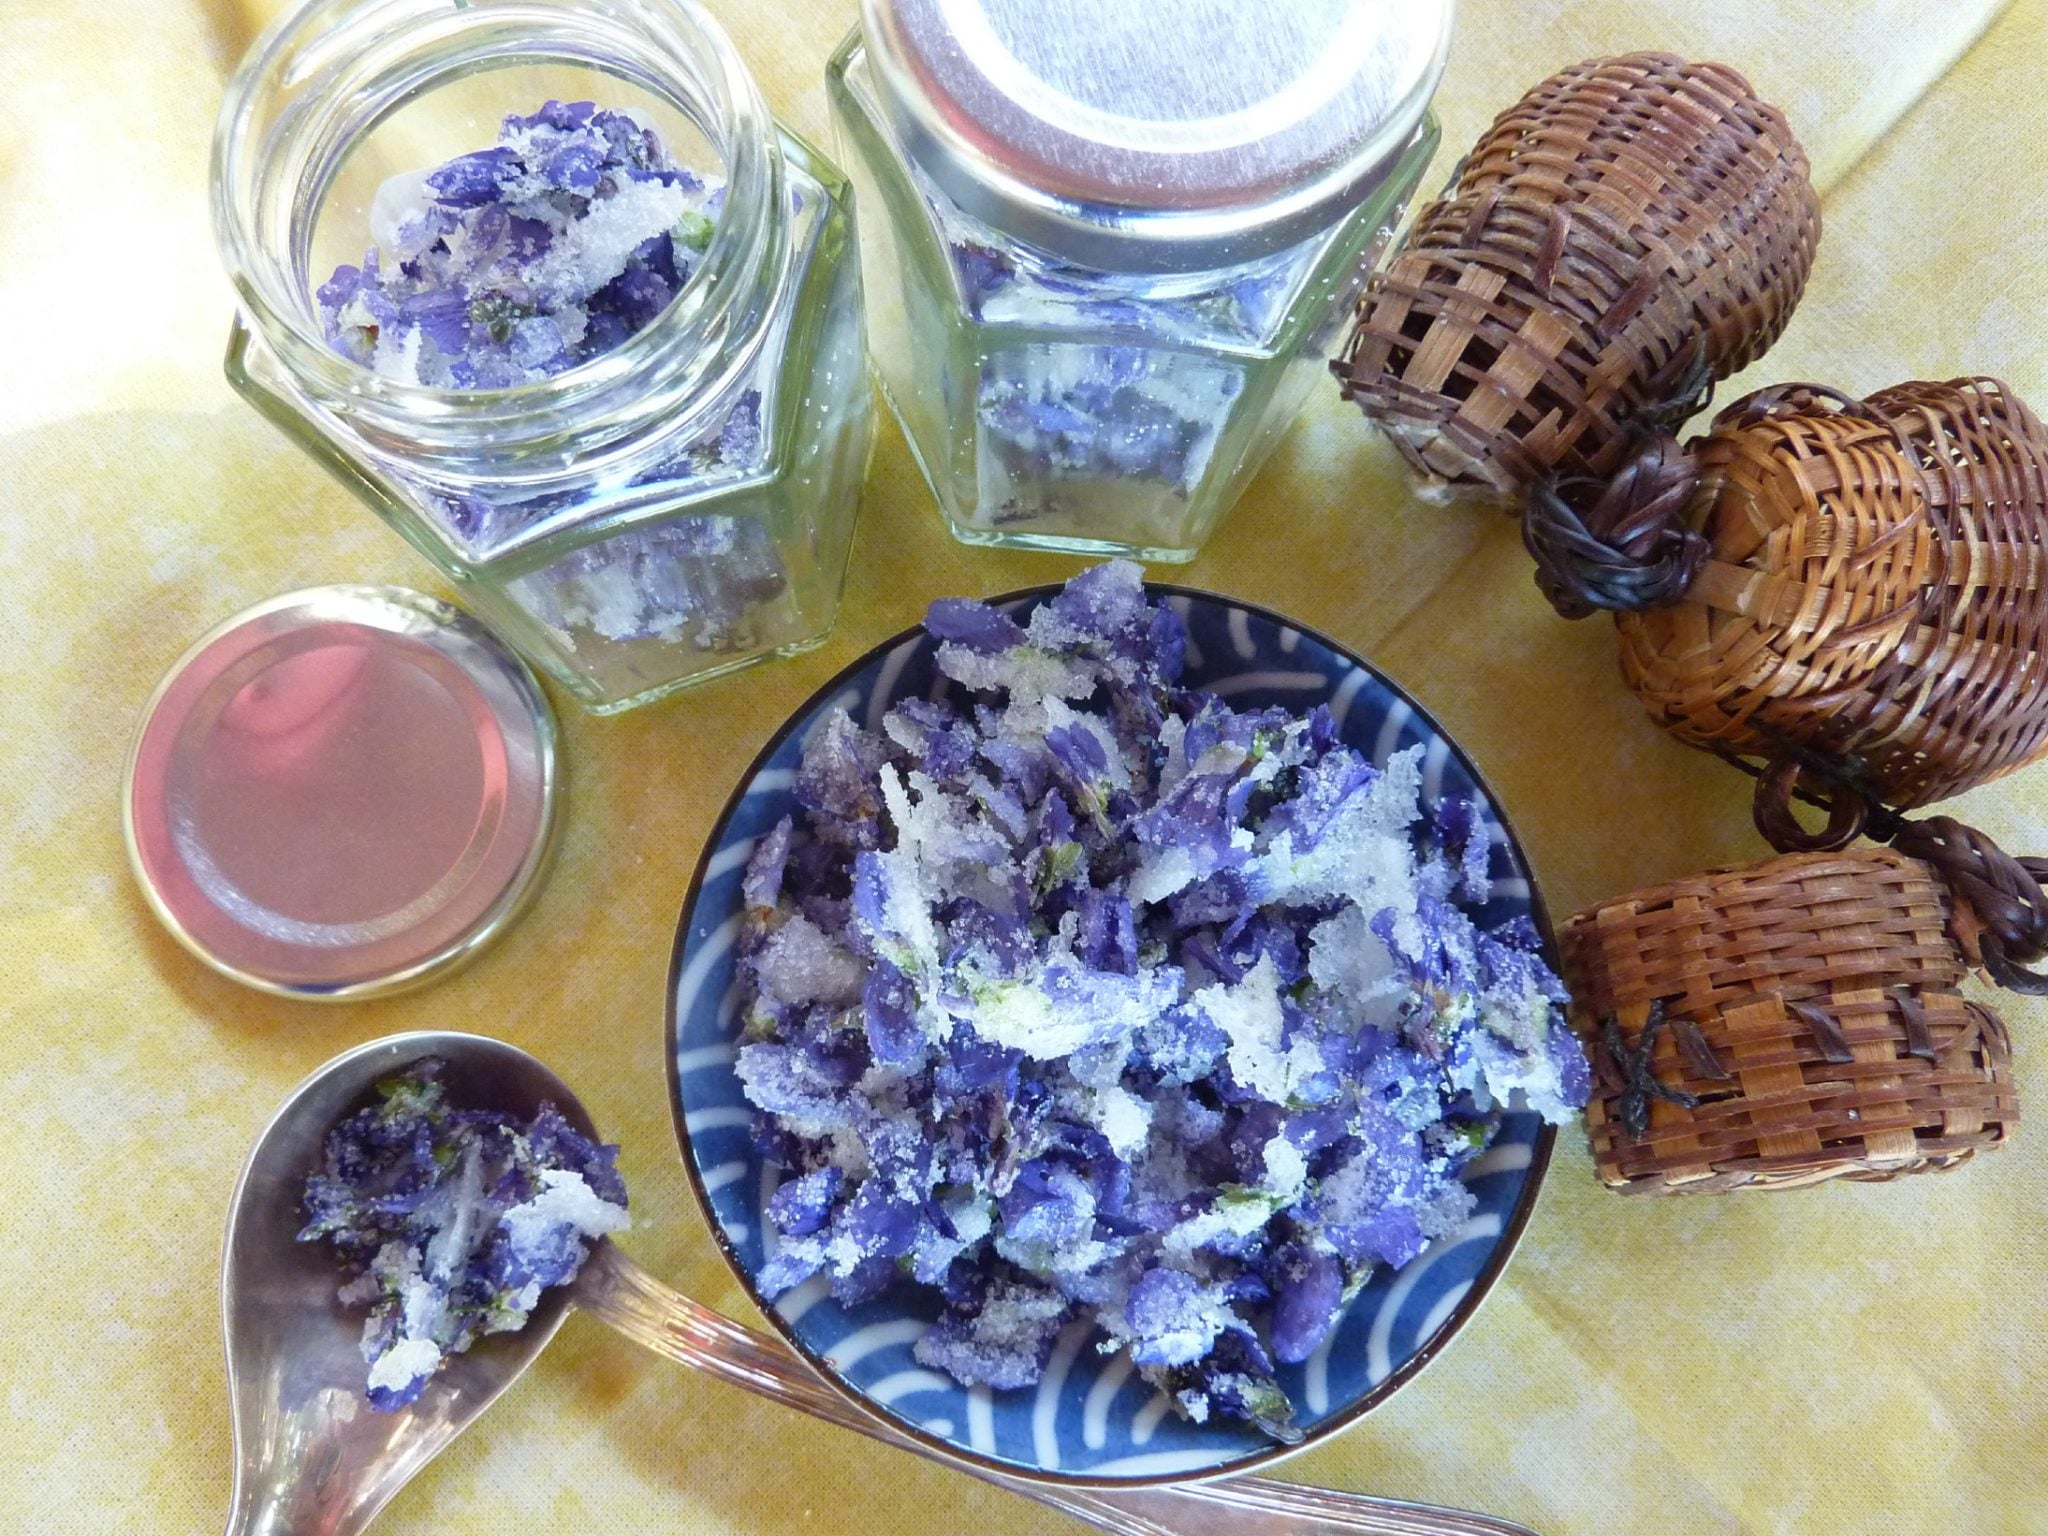 39c04ad168b81f Homemade Crystallized Violets Recipe - Your Guardian Chef